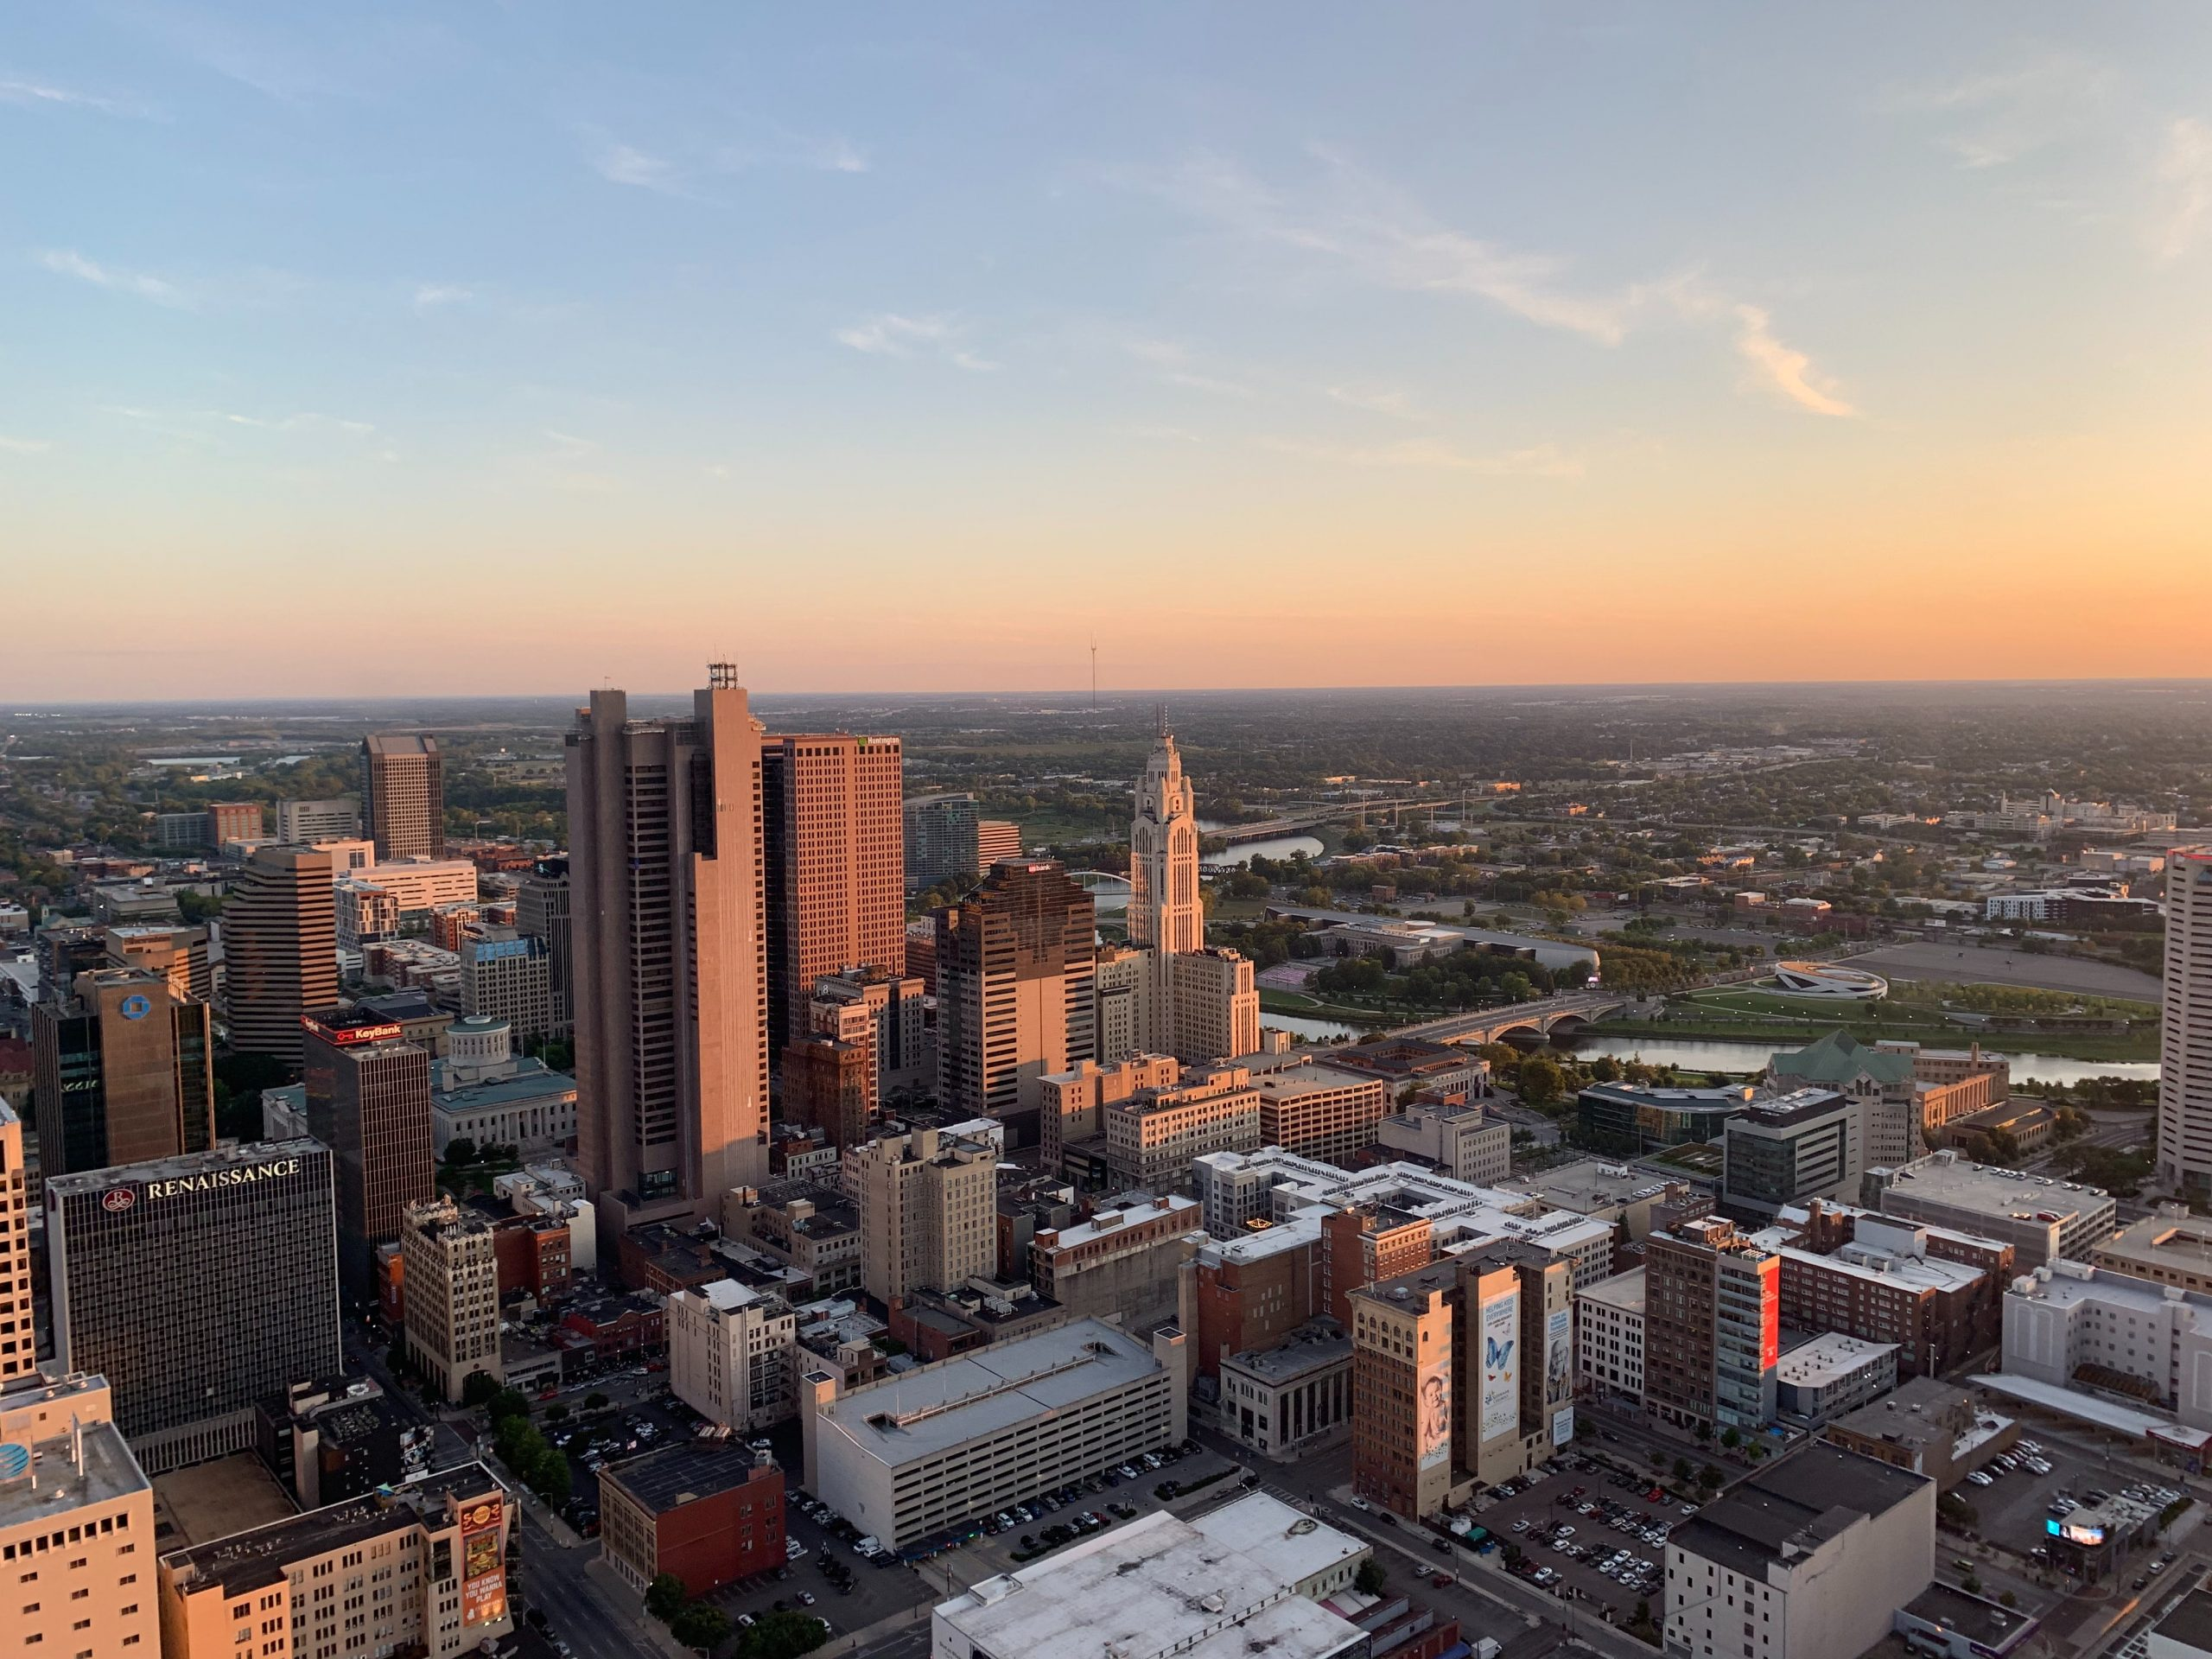 Skyline view of Downtown Columbus in the early evening.